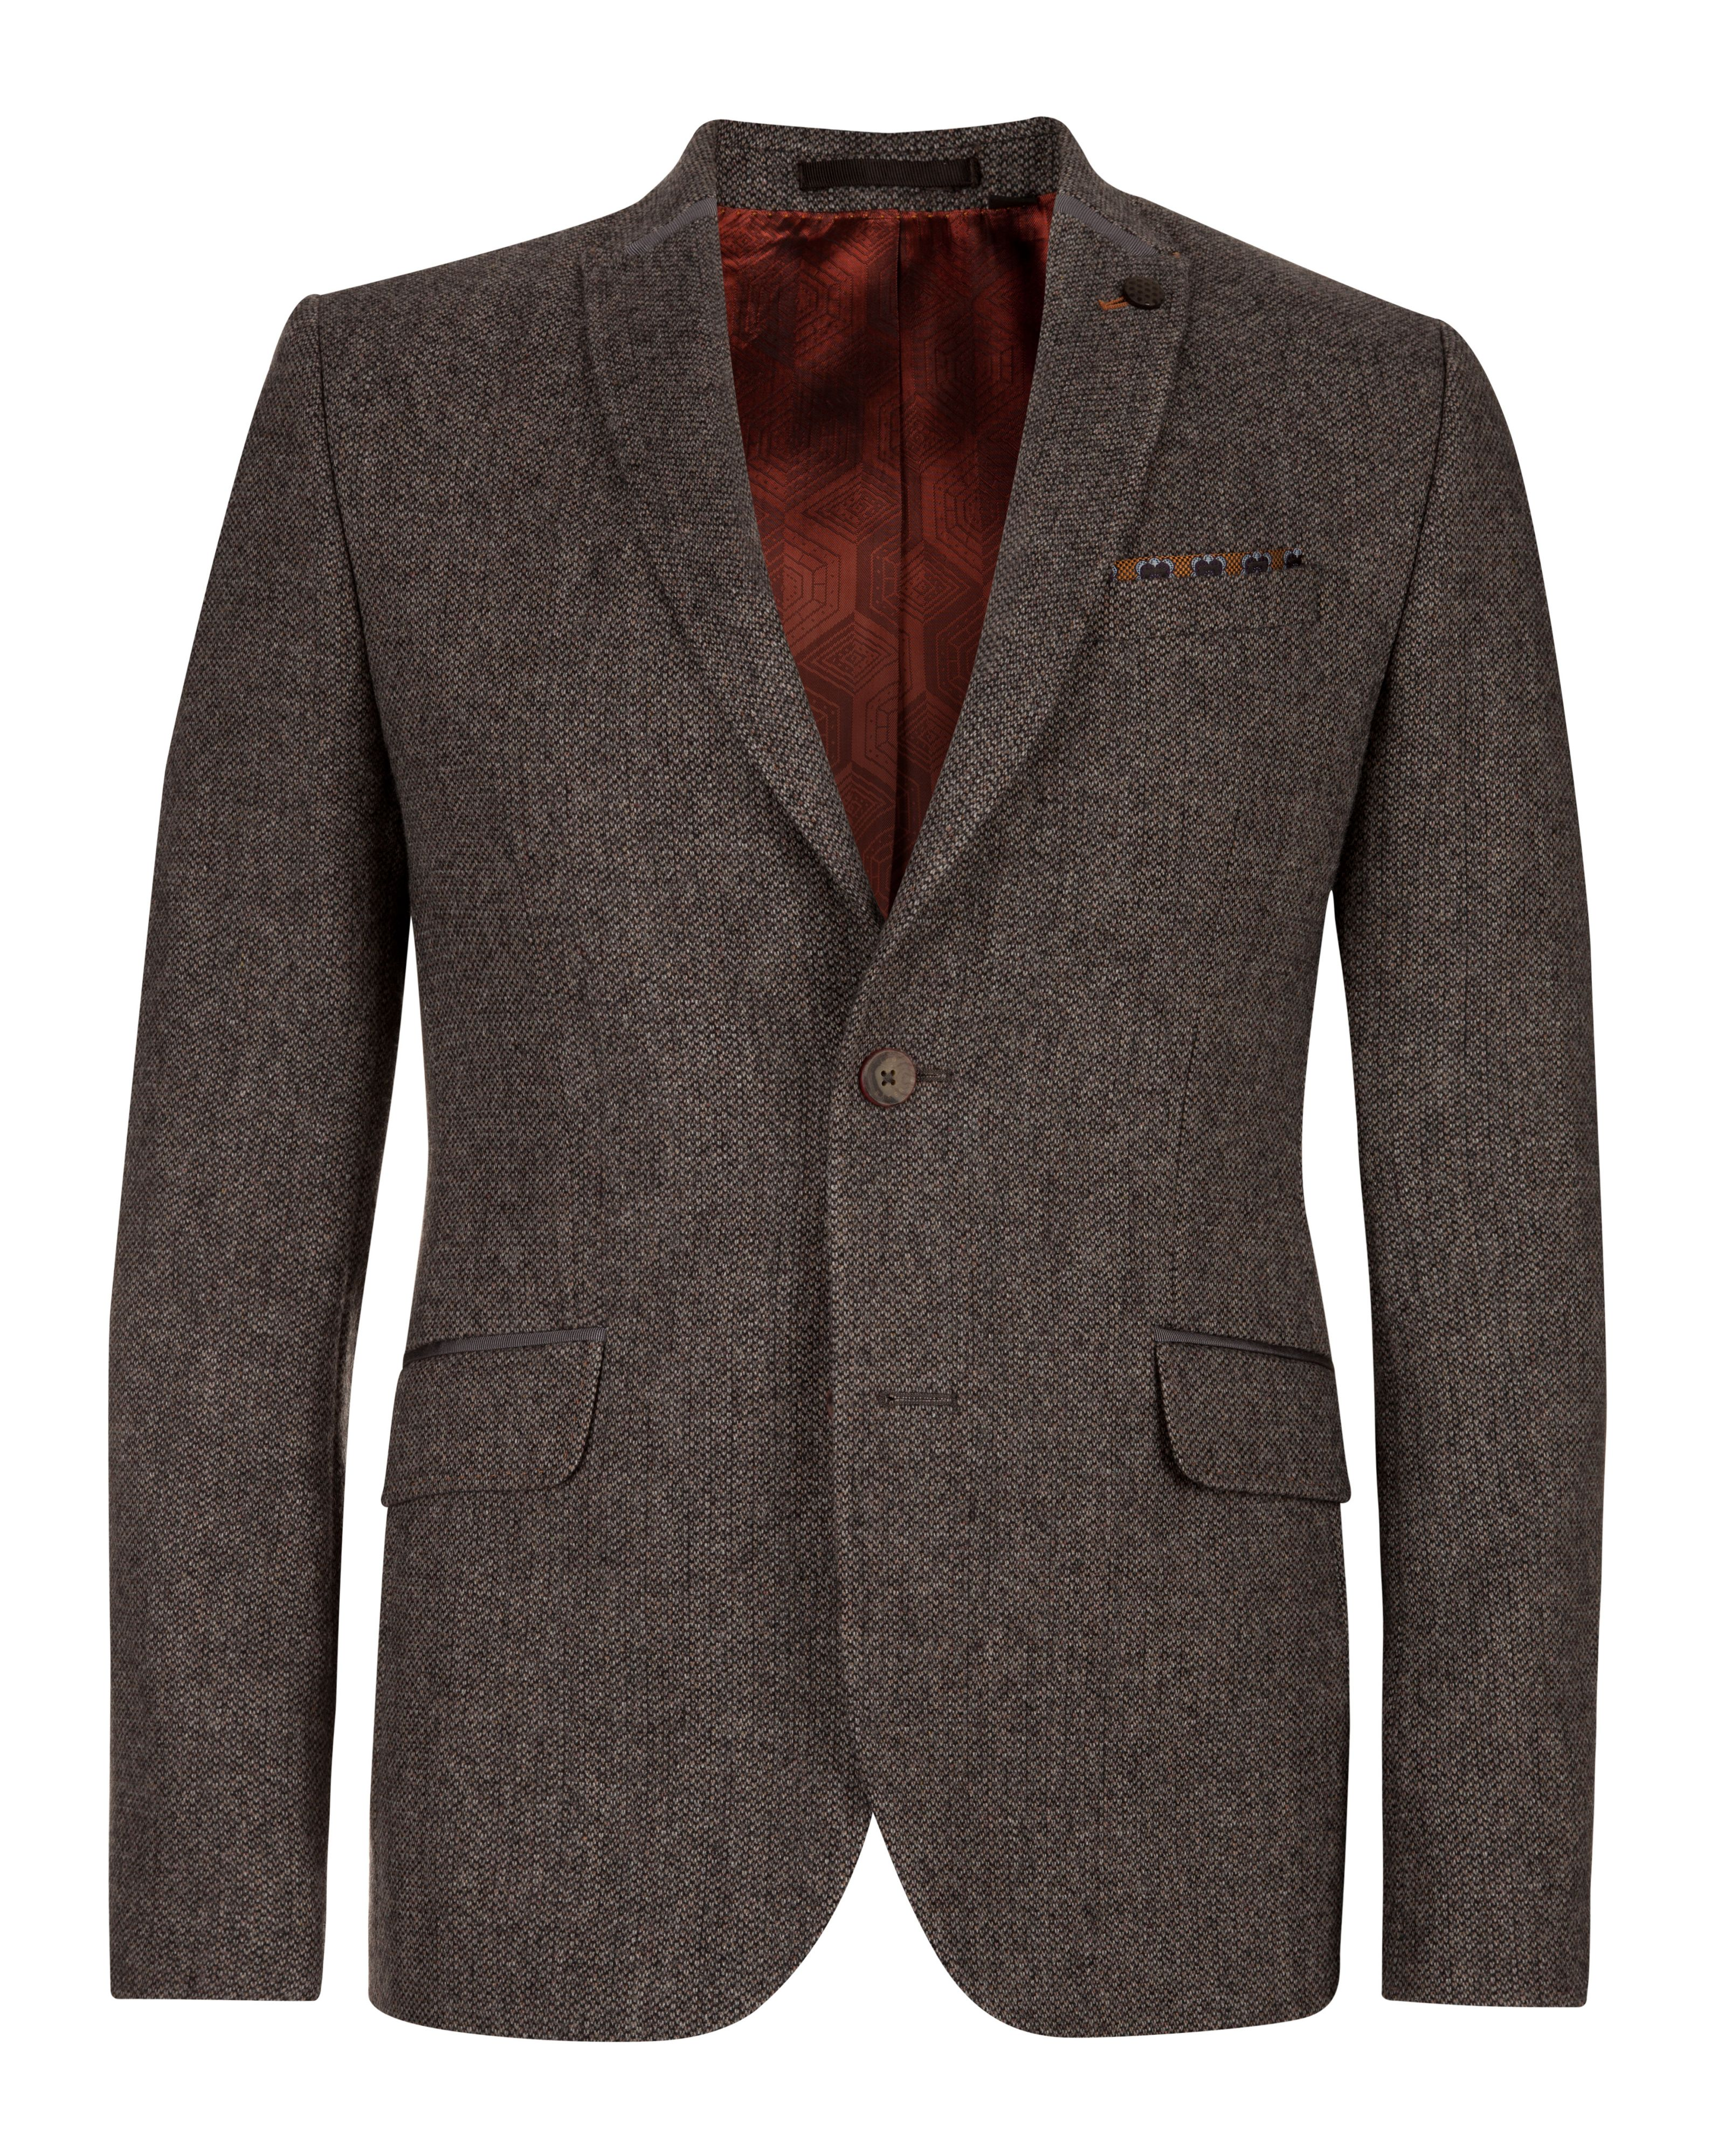 Upperz wool blazer